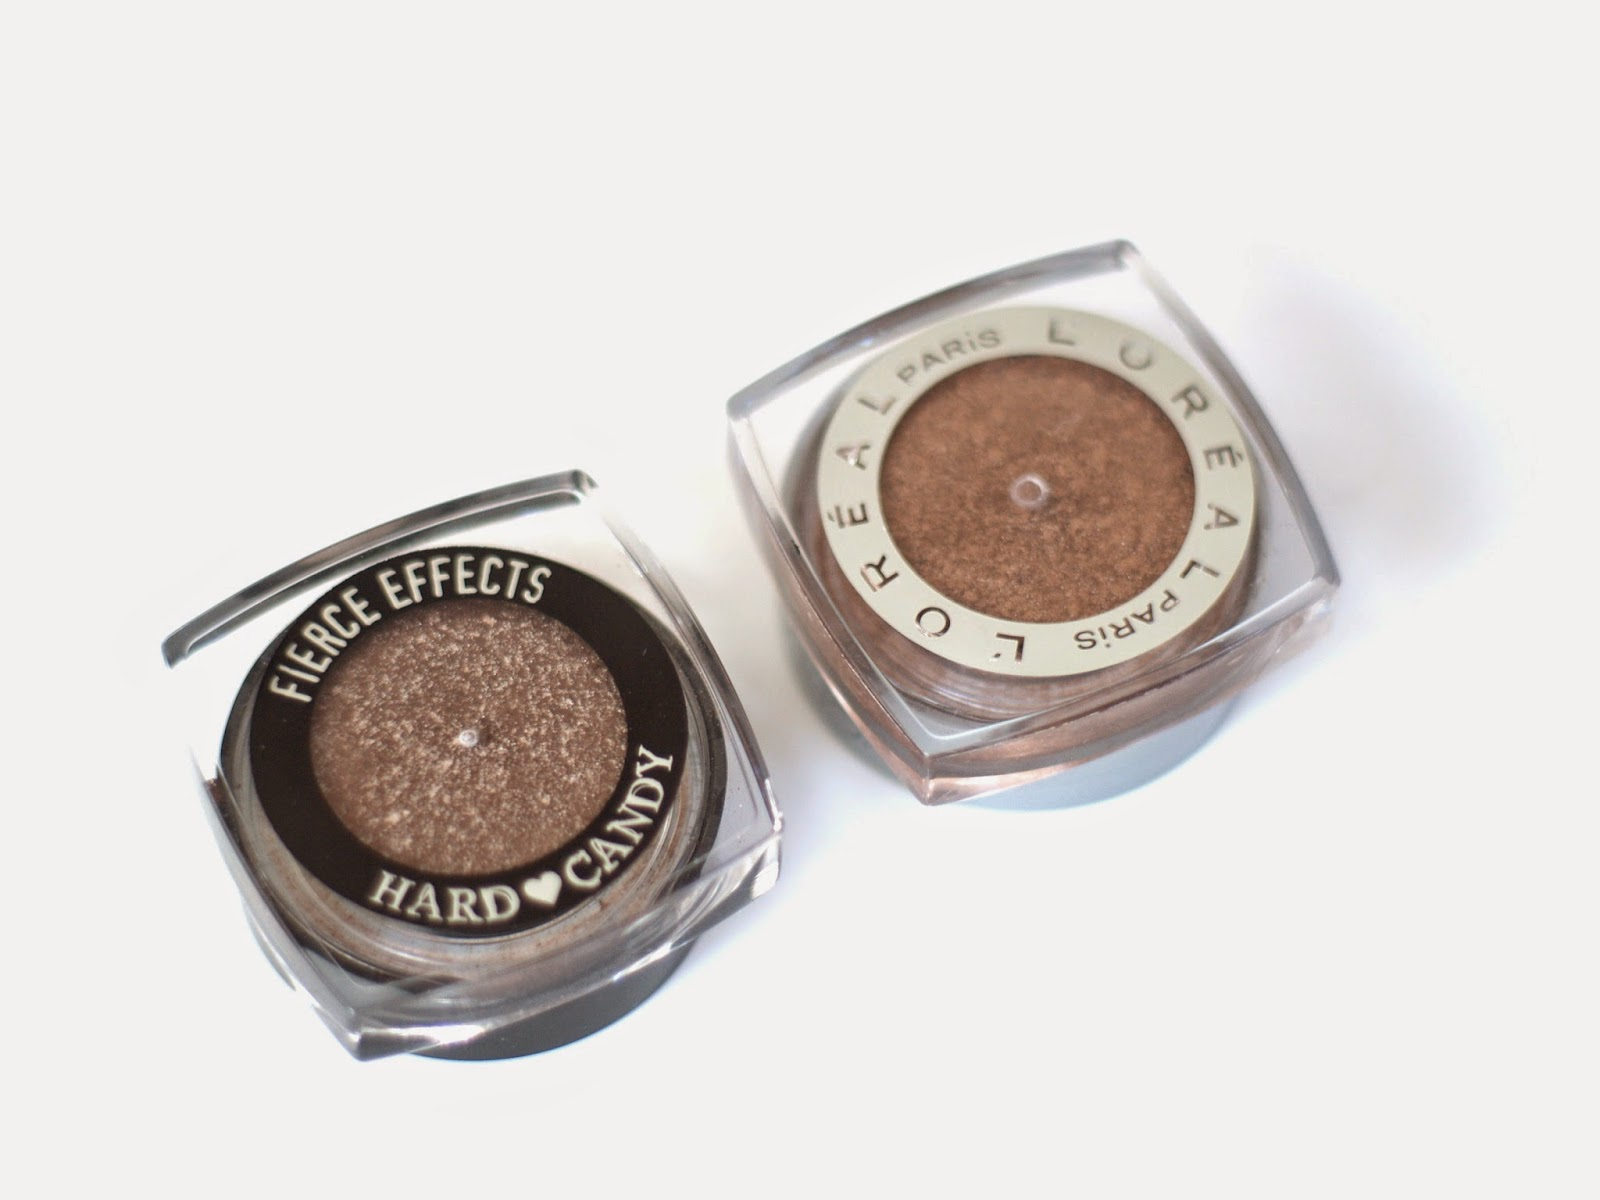 Hard Candy Fierce Effects vs. L'Oréal Infallible